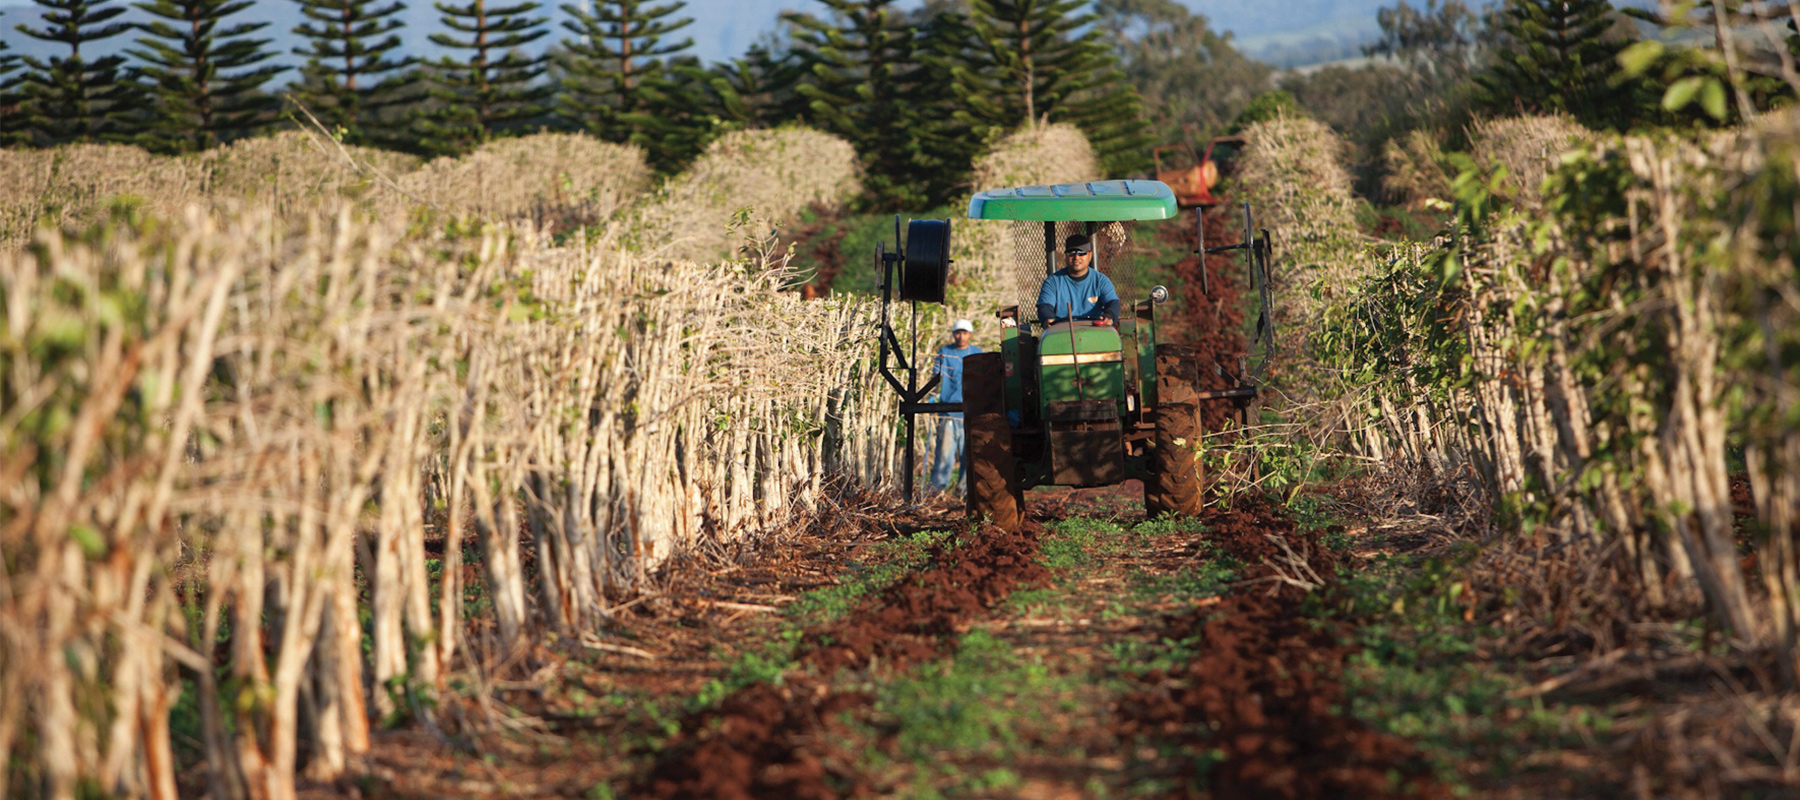 kauai coffee farmer tends to soil in the coffee orchard.